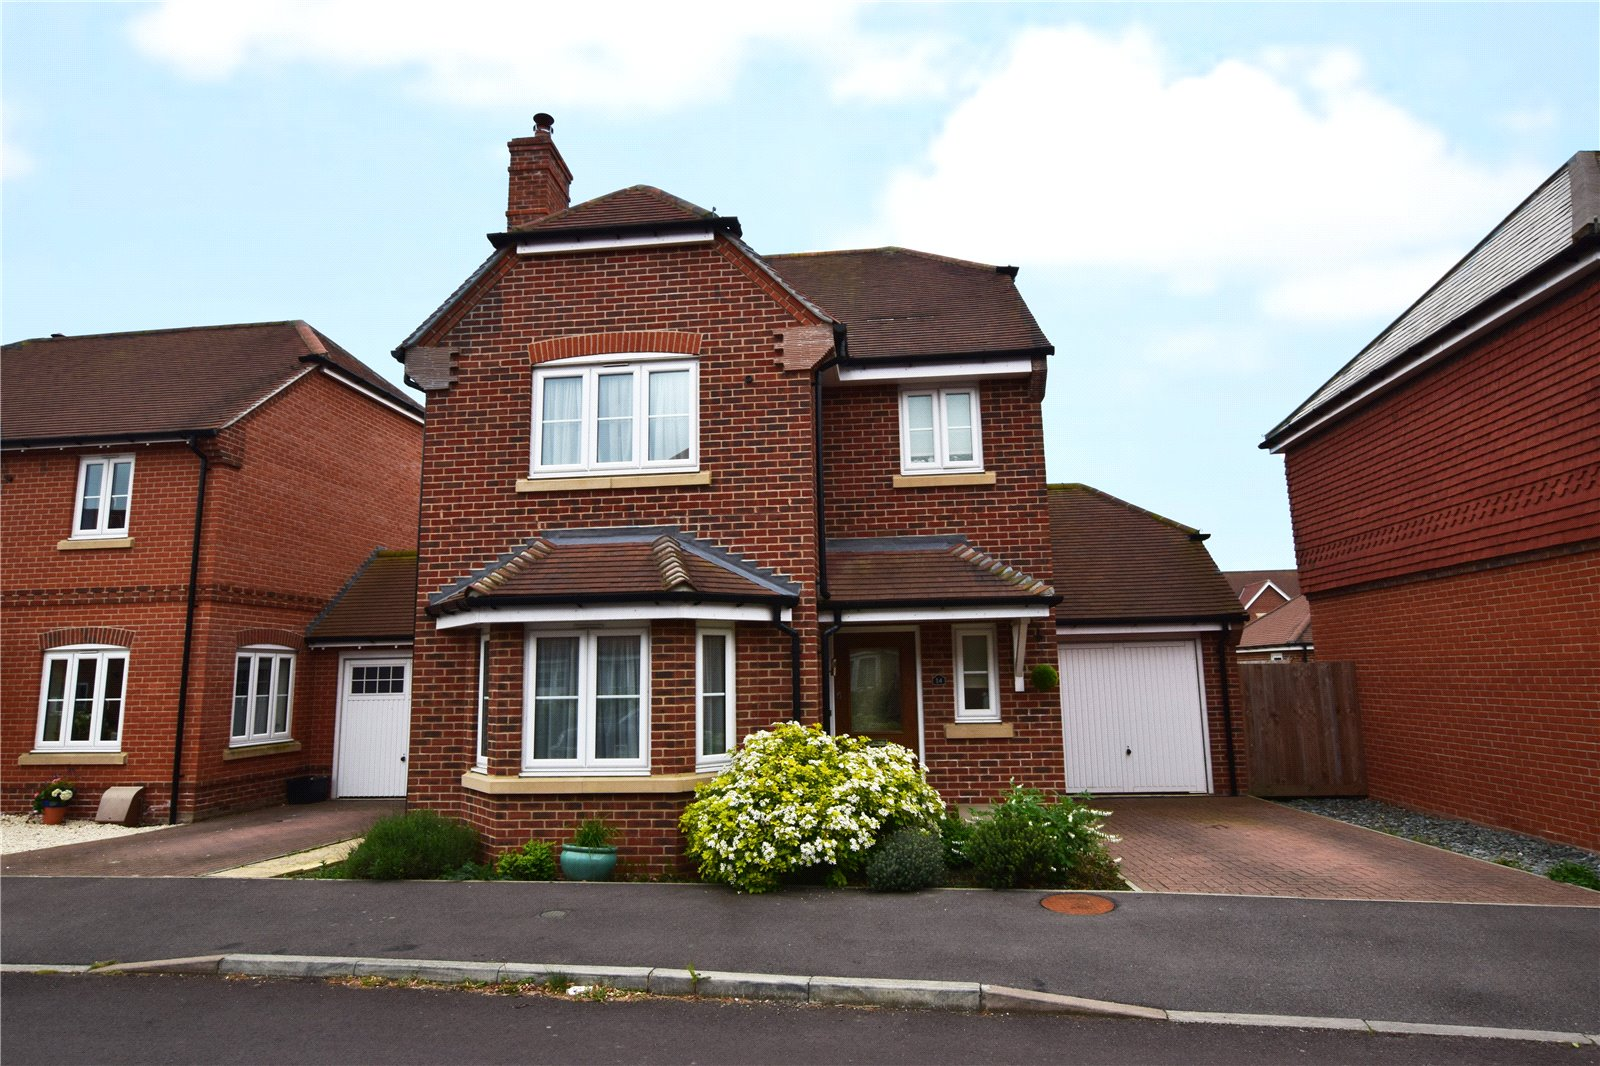 3 Bedrooms Detached House for sale in Blackberry Gardens, Winnersh, Wokingham, Berkshire, RG41